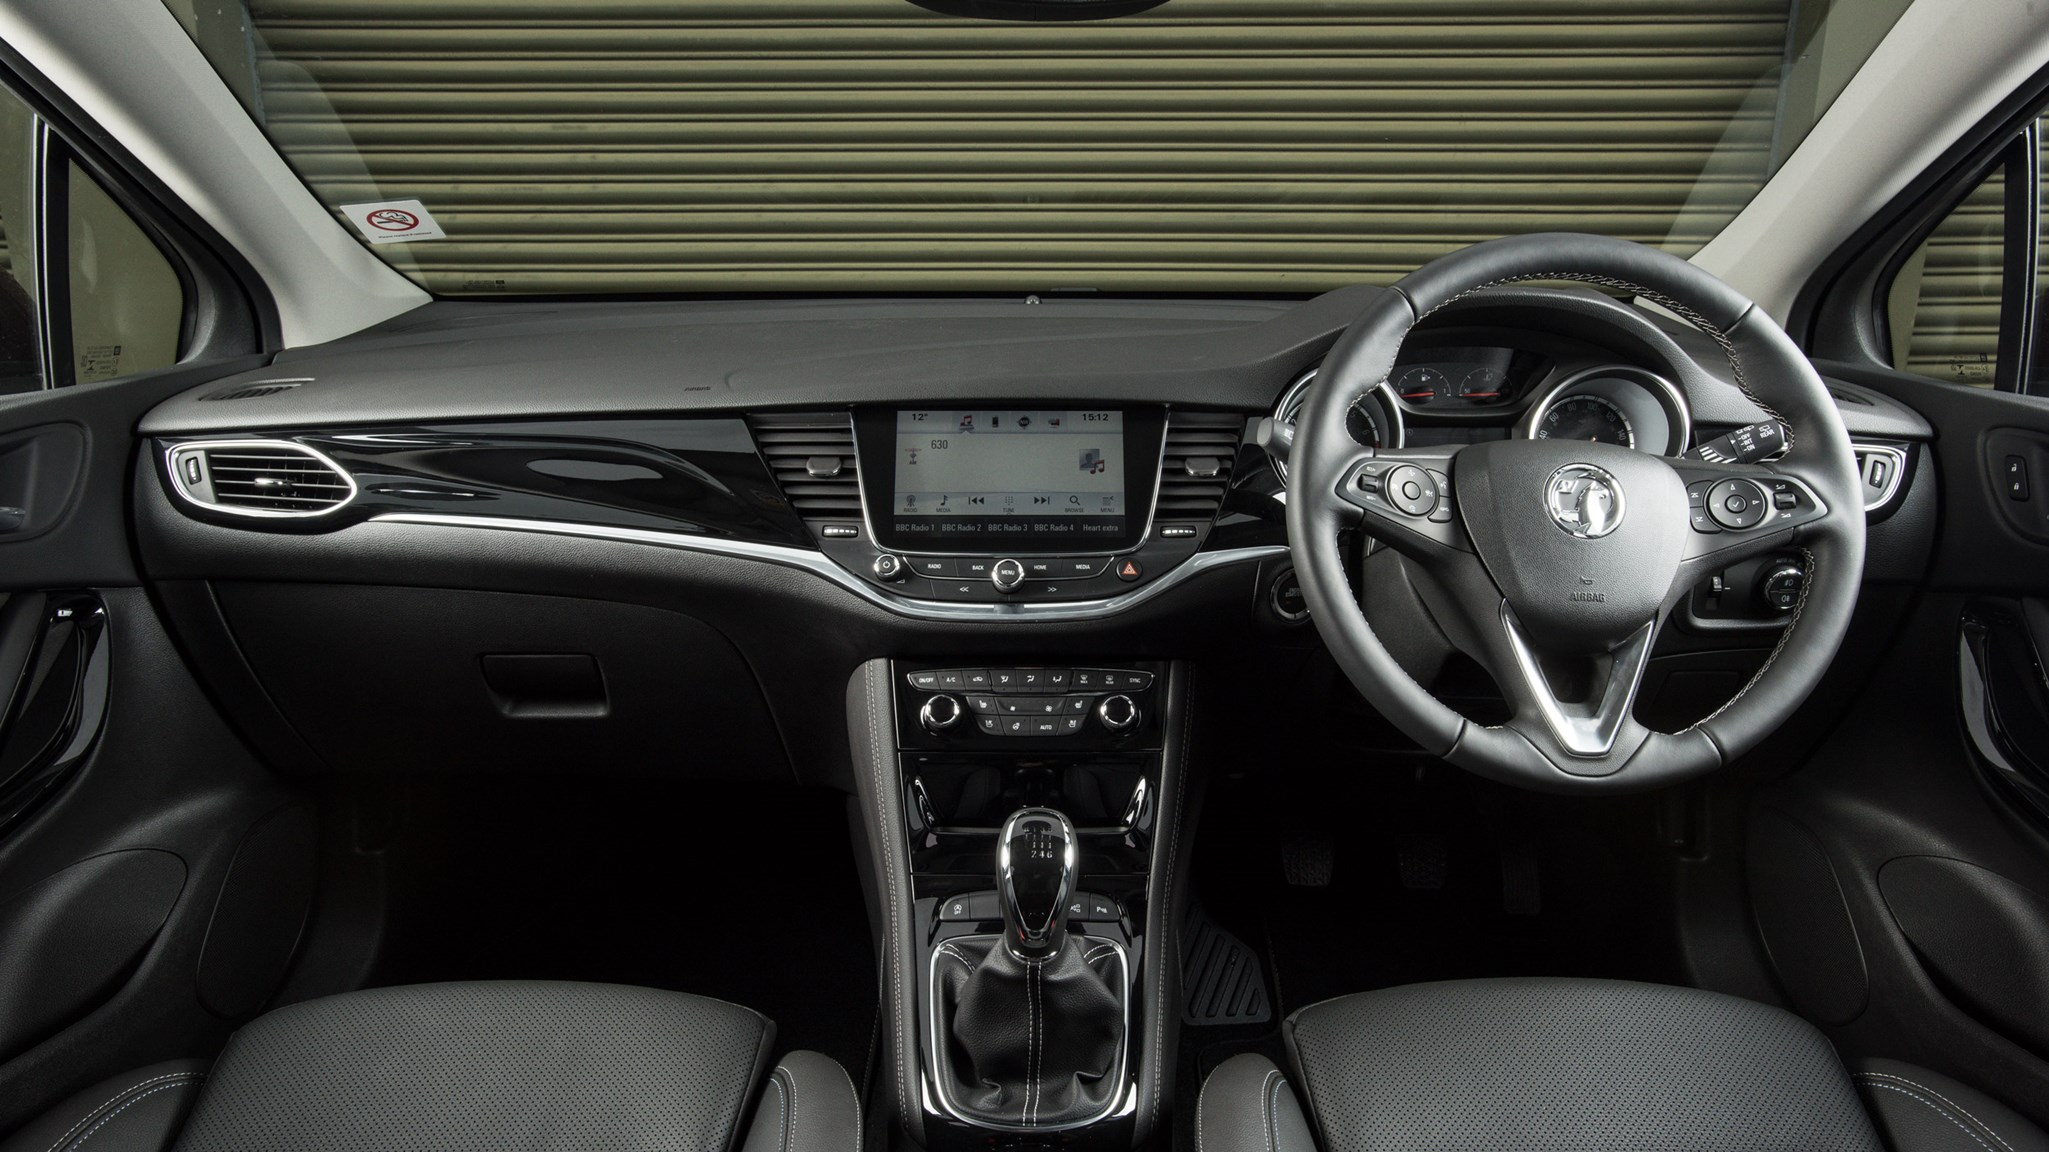 Vauxhall Grandland X interior review